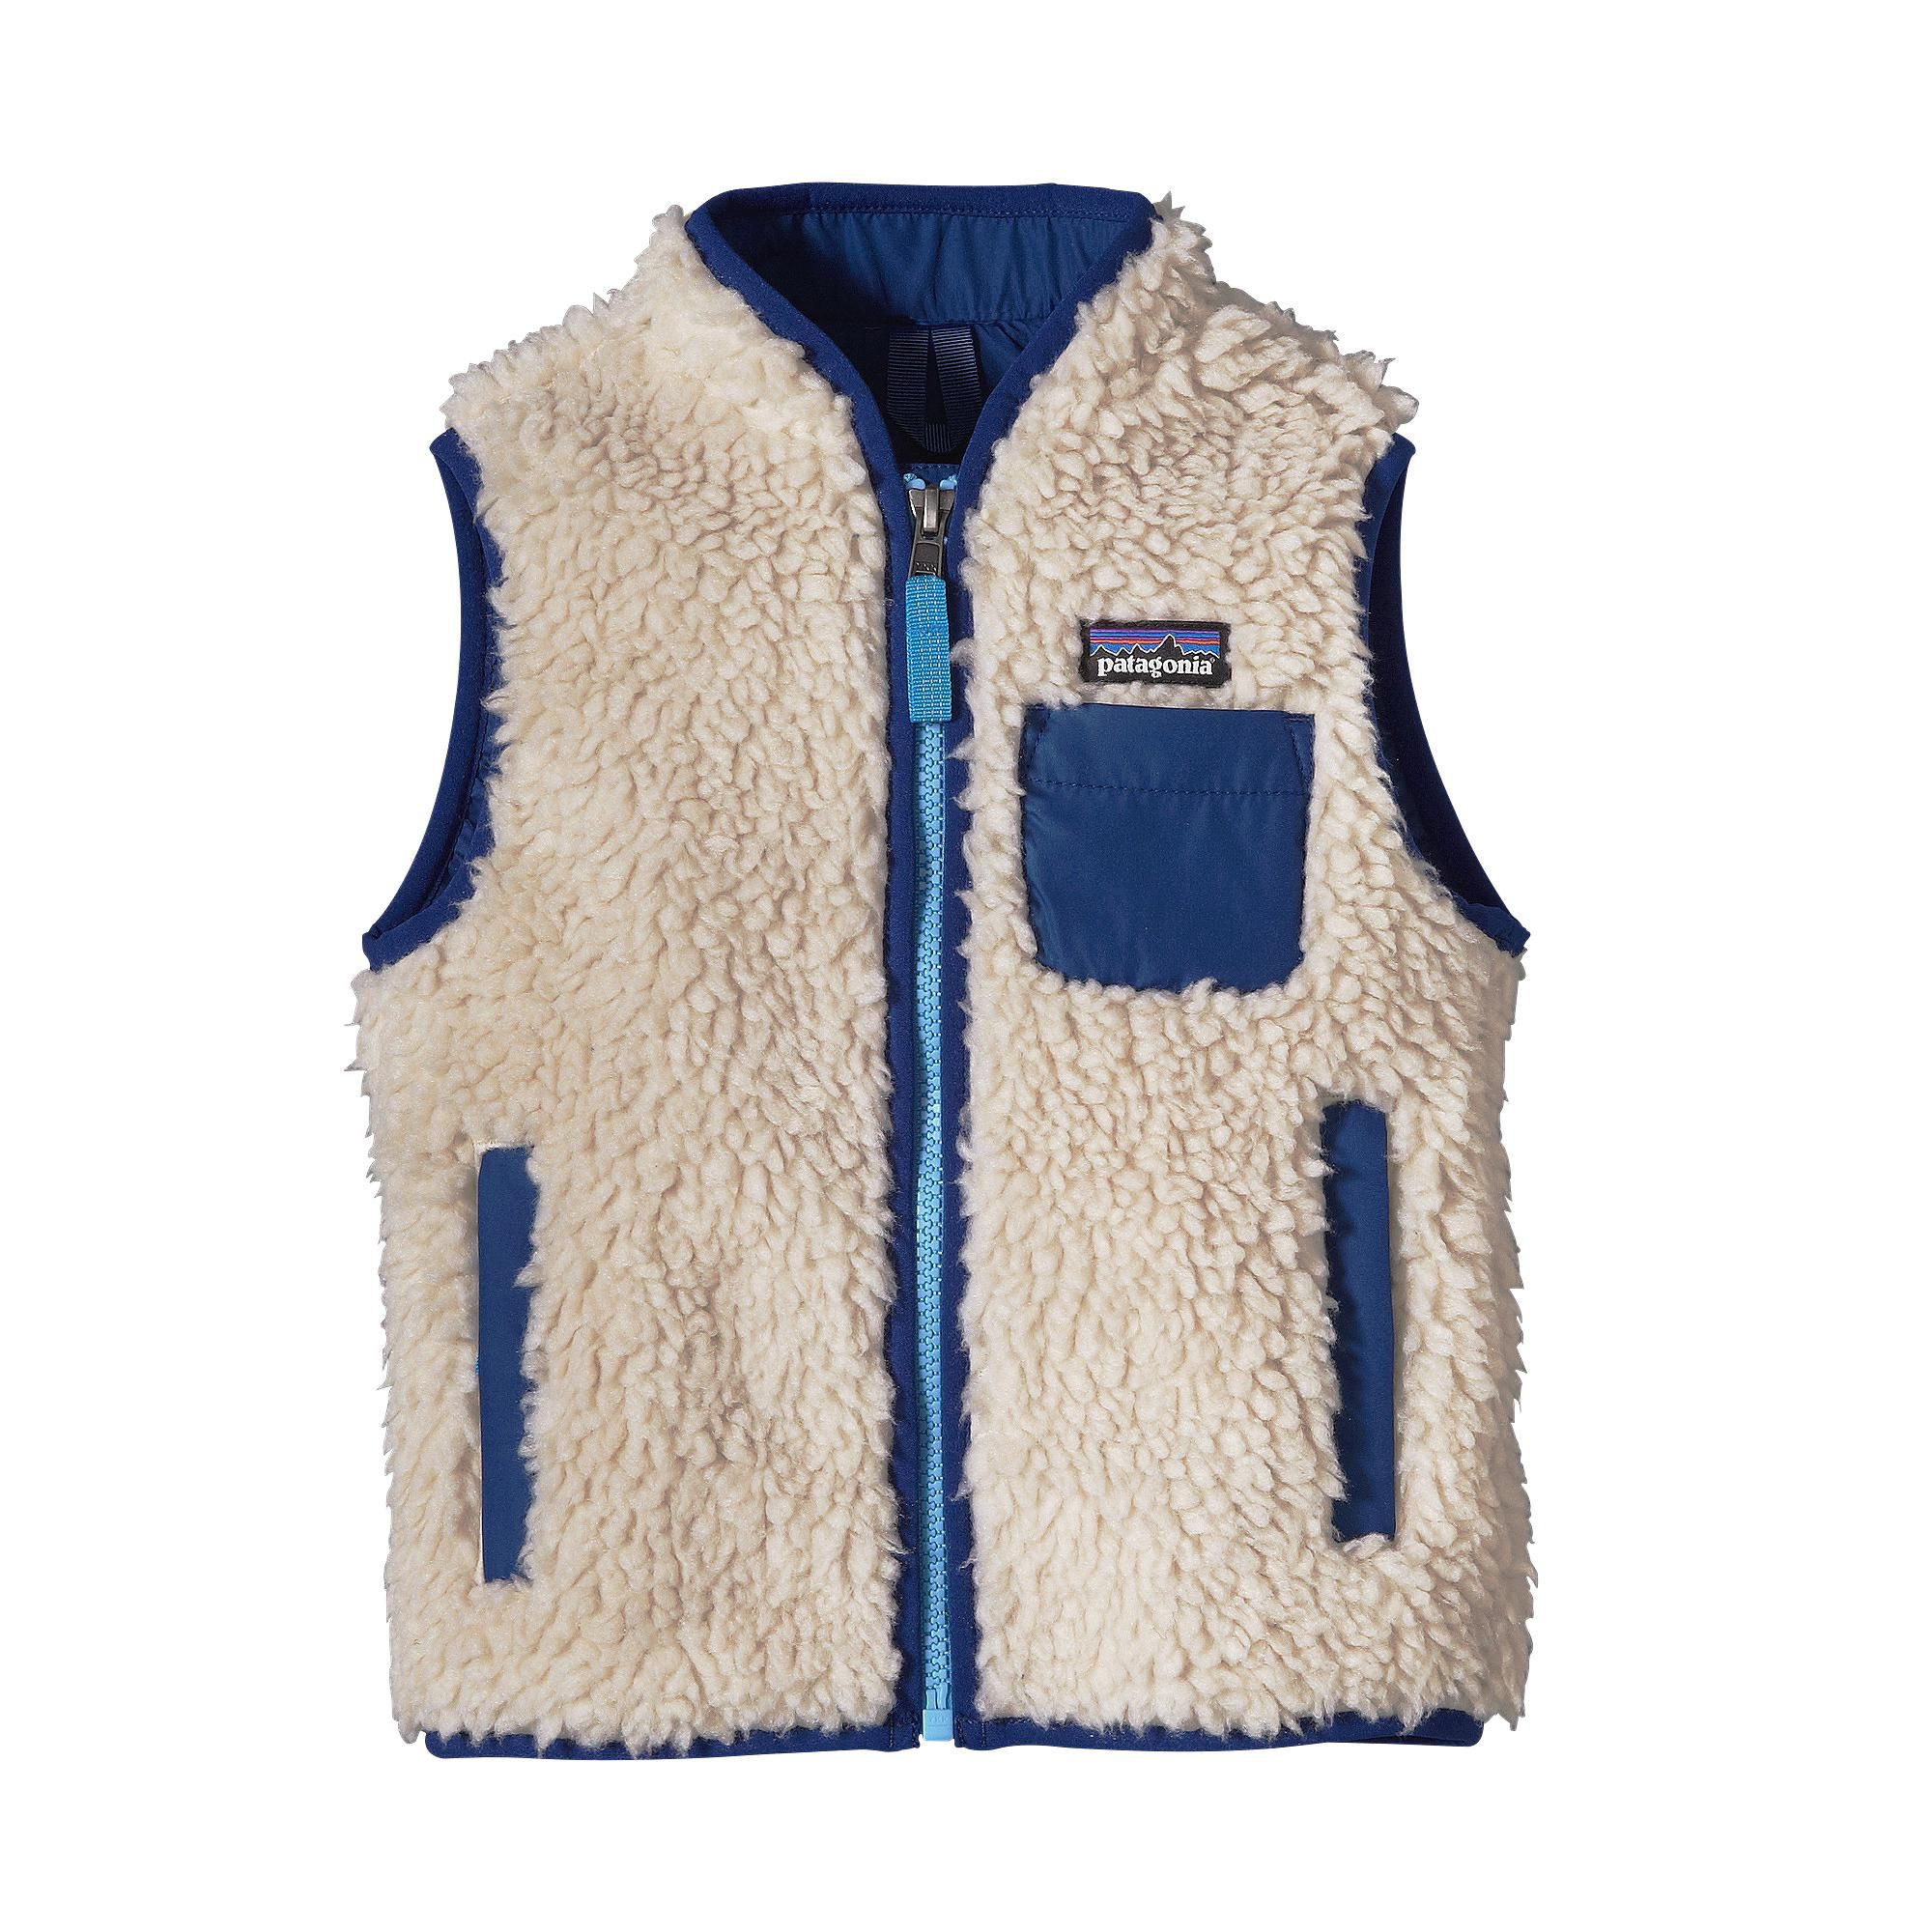 Baby Retro X 174 Fleece Vest Boyz Vintage Kids Clothes